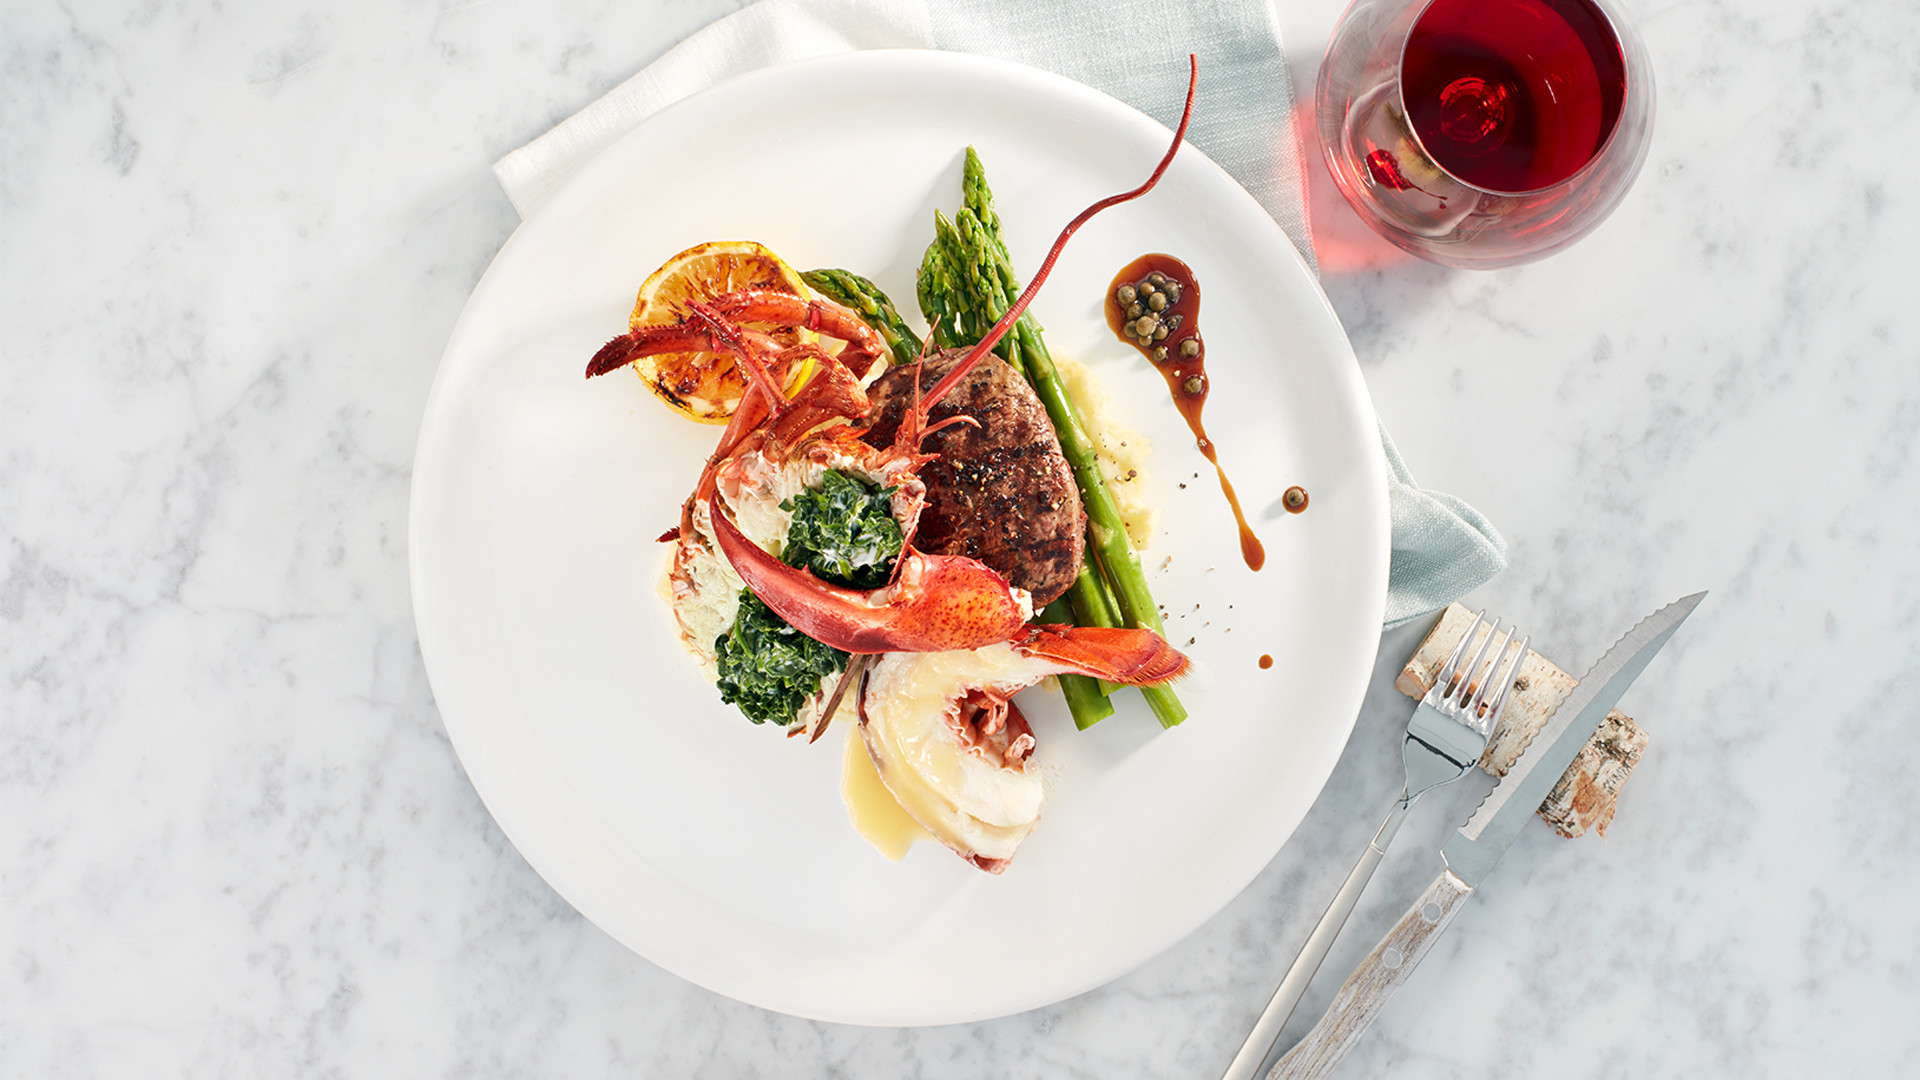 Win dinner for two at the CN Tower's 360 Restaurant | Steak and lobster dish